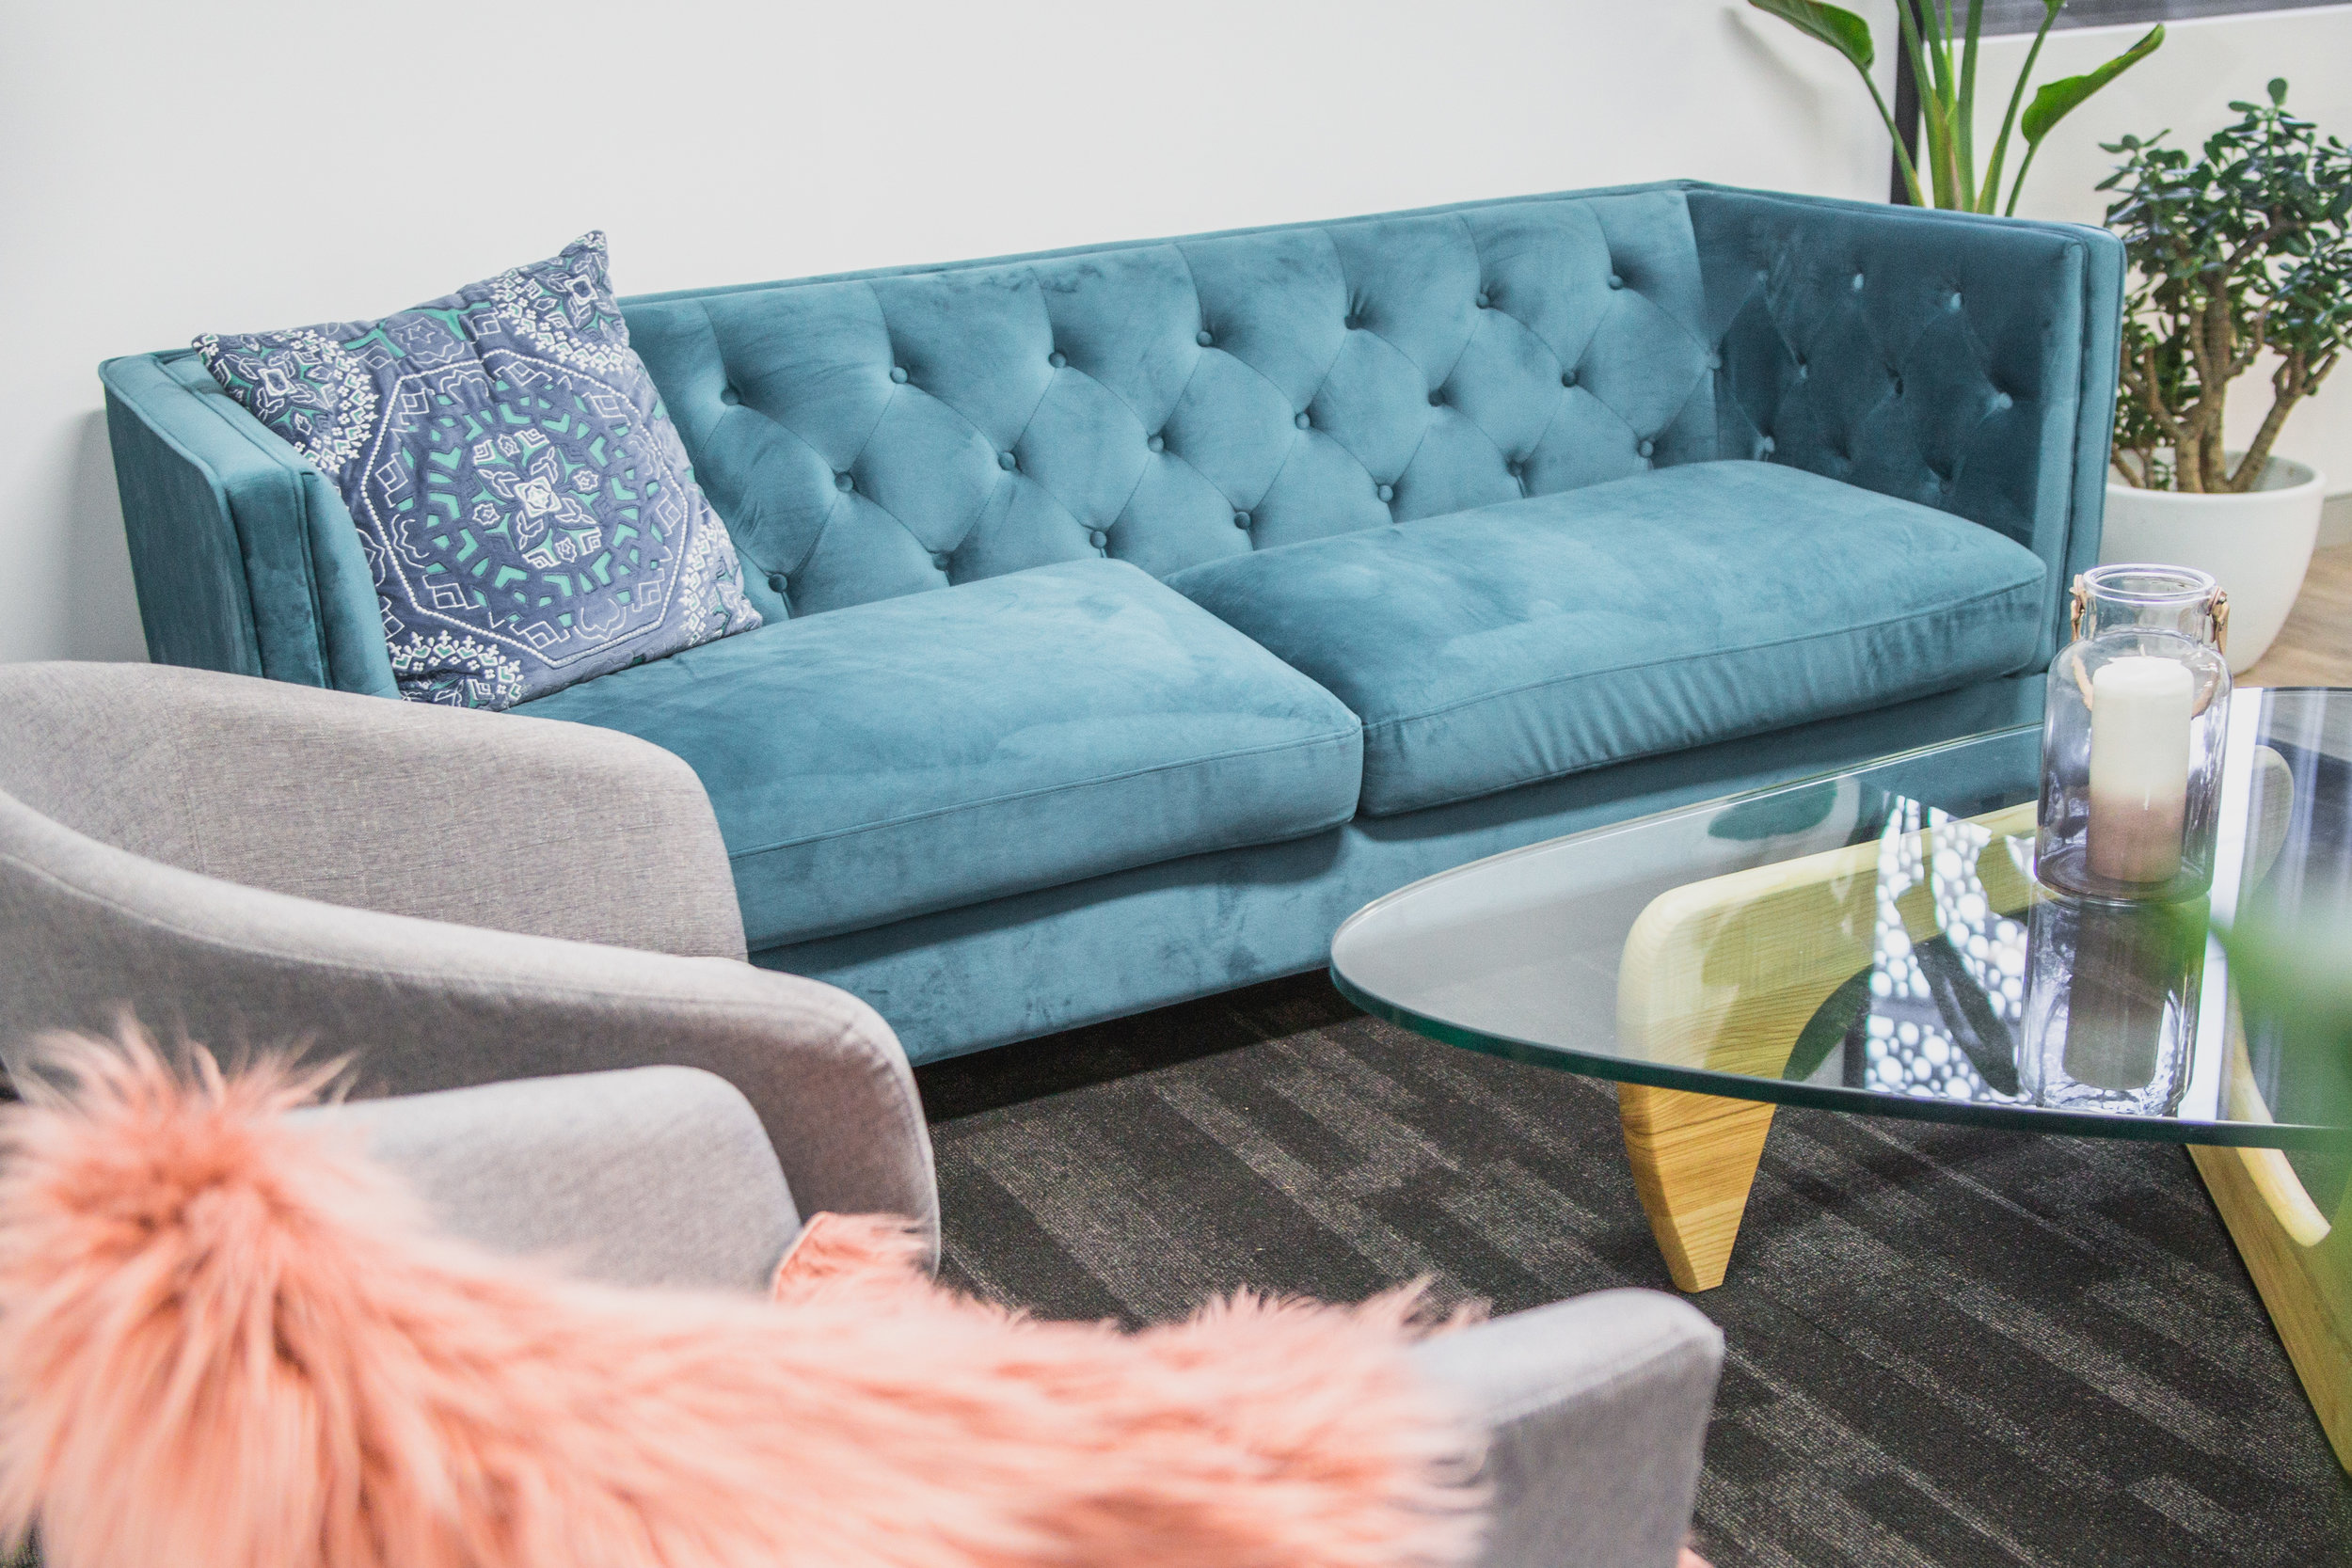 Relaxed Lounge - $40/hourLarge couch with 2 lounge chairs & low tableTV with HDMI or chrome-cast